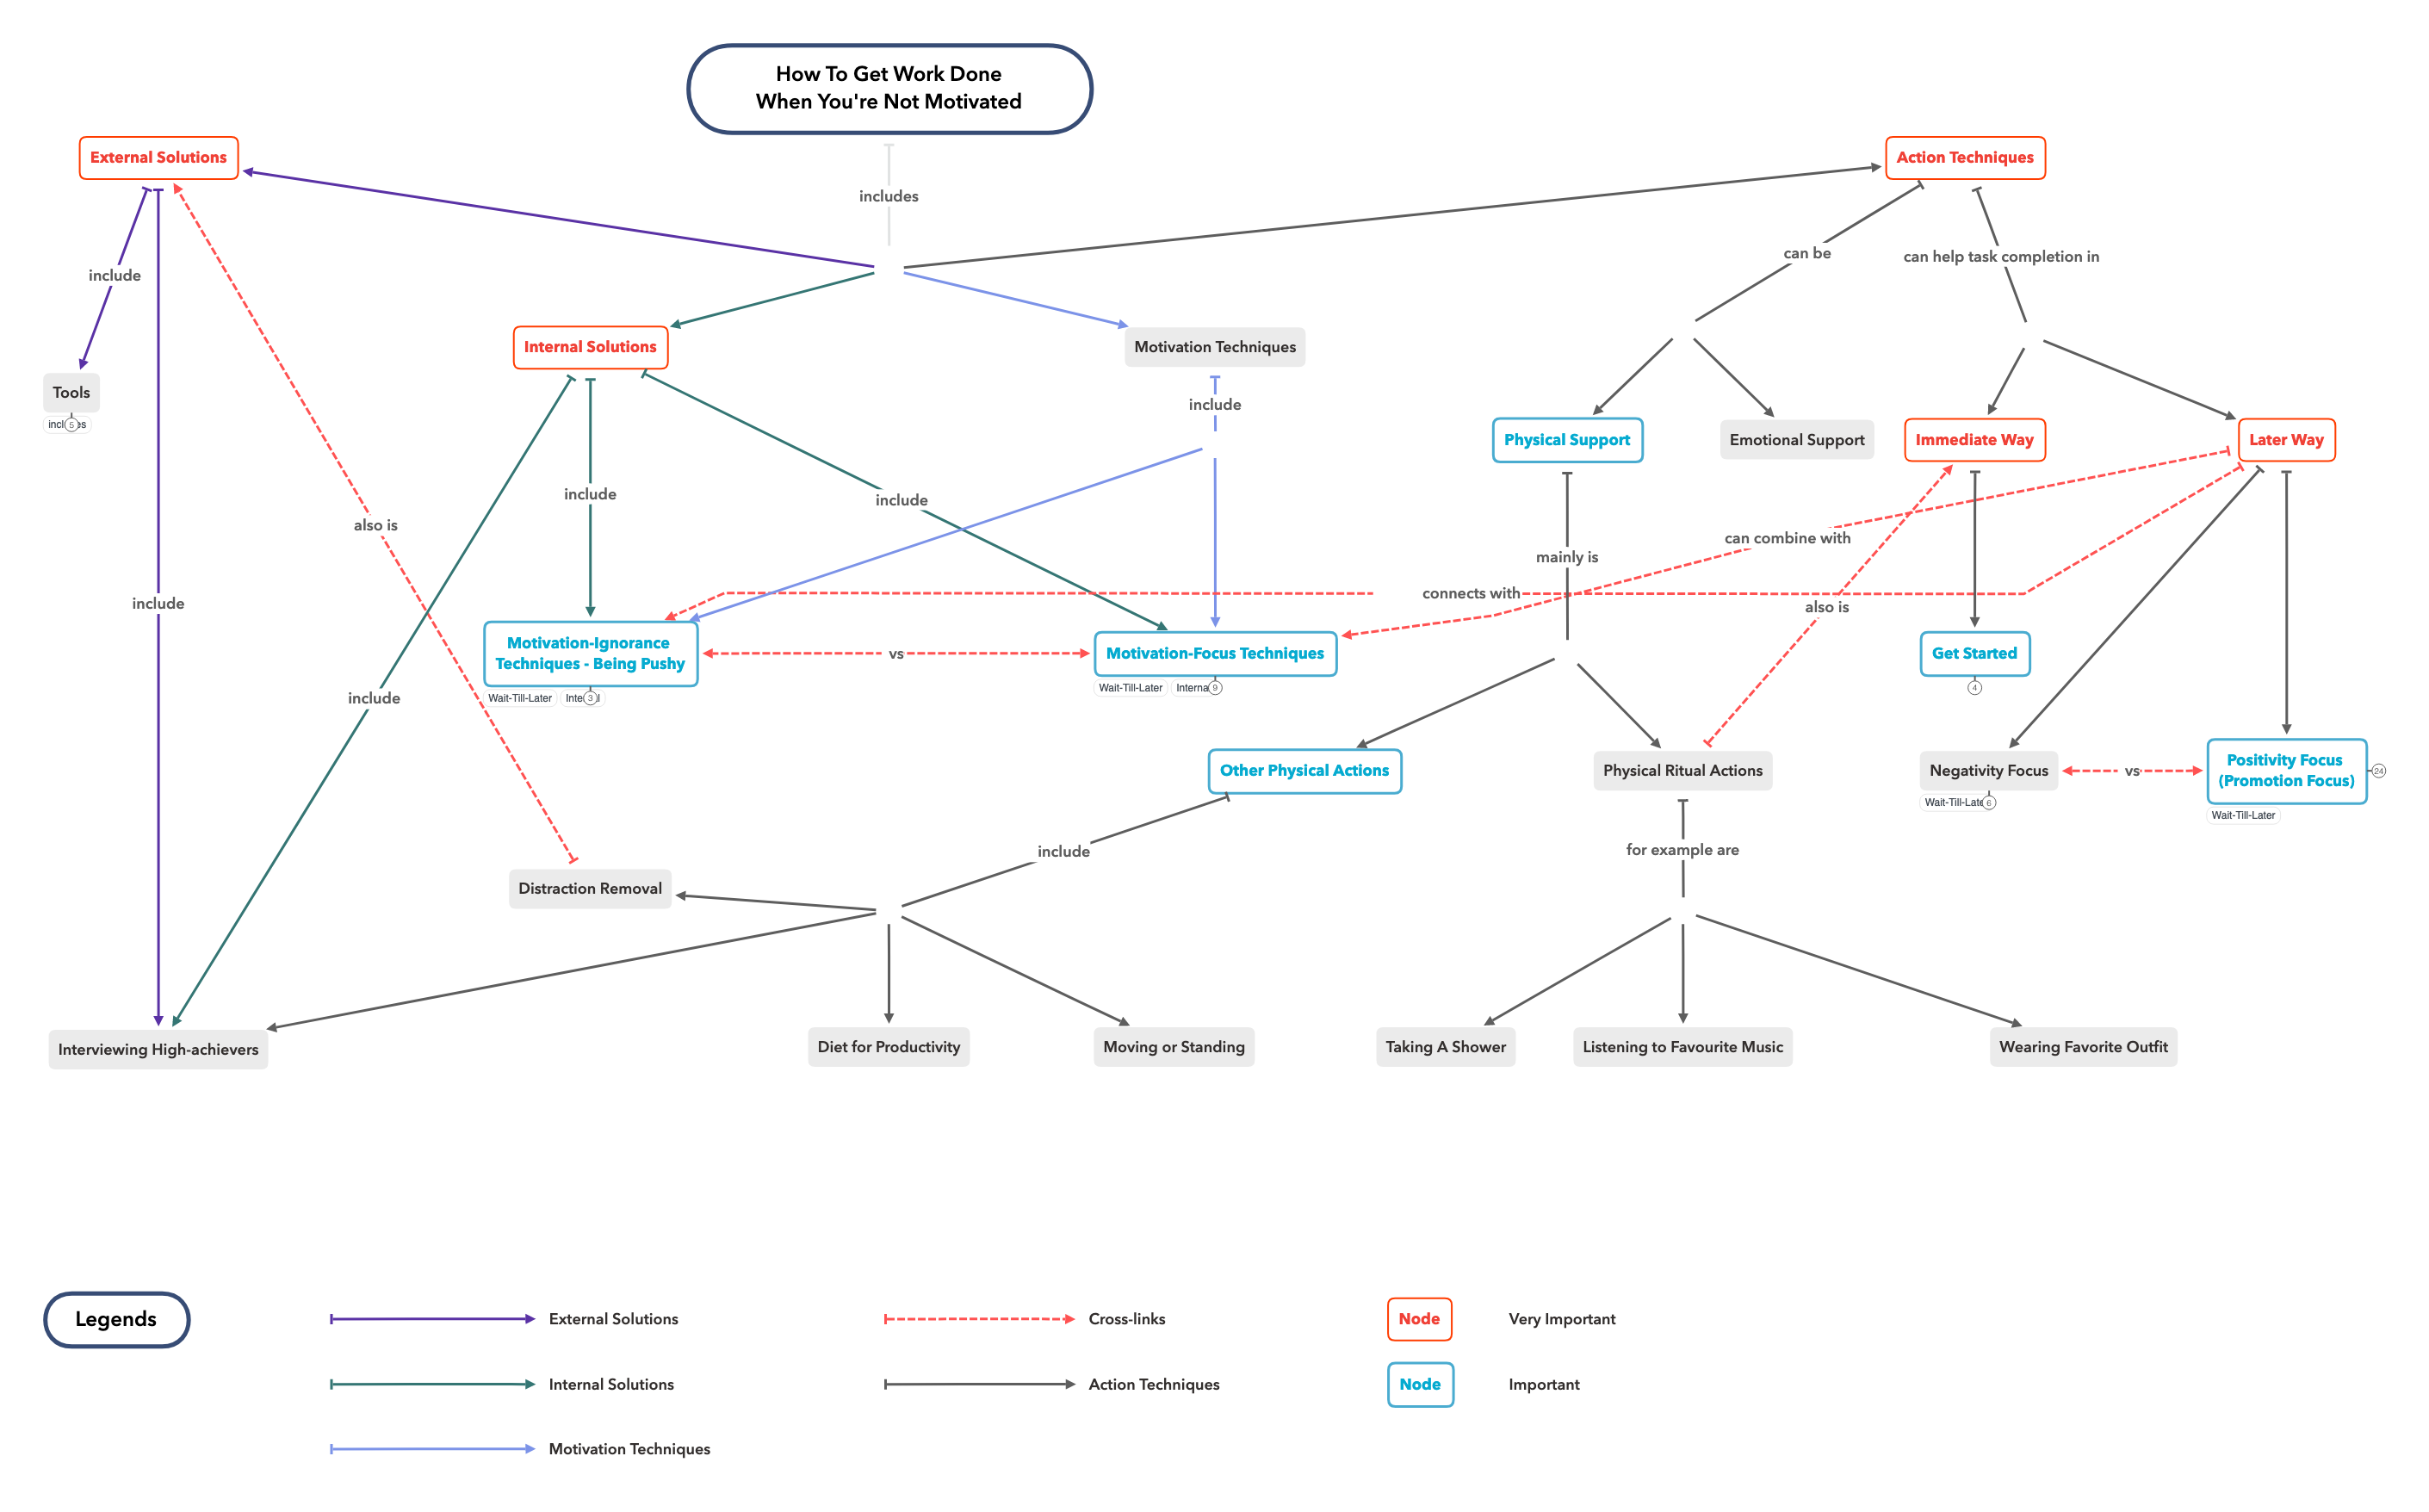 Concept map: How to get work done when you are not motivated.